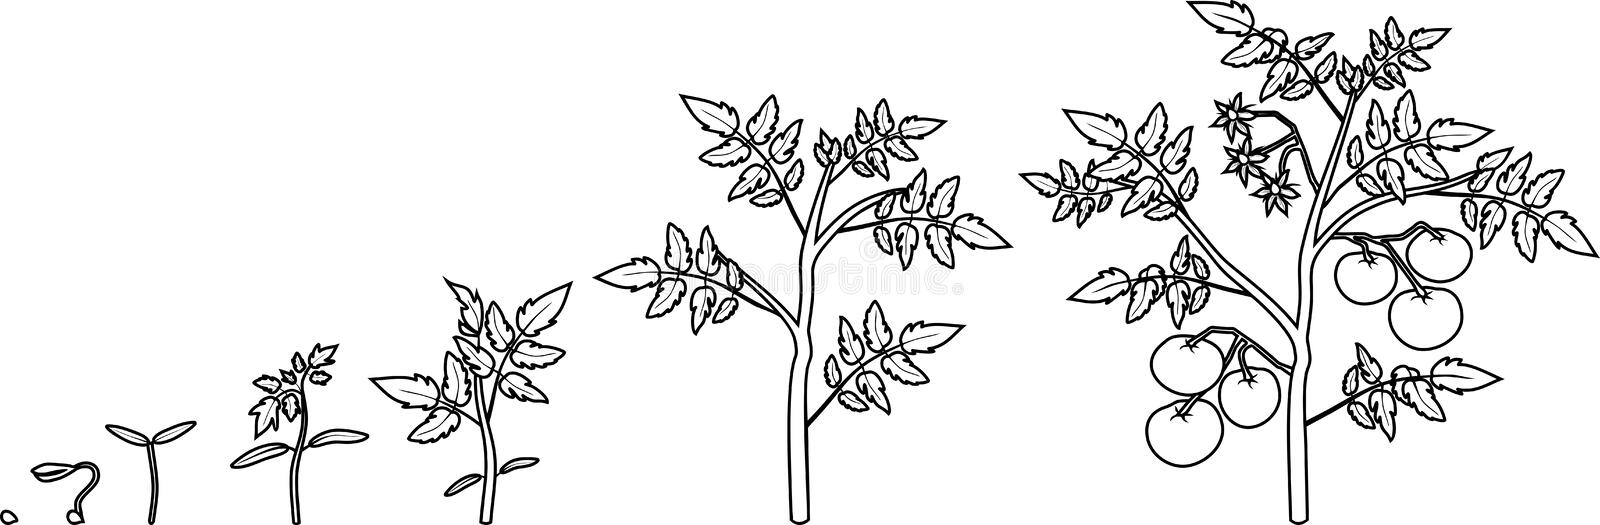 Coloring page. Life cycle of tomato plant. vector illustration